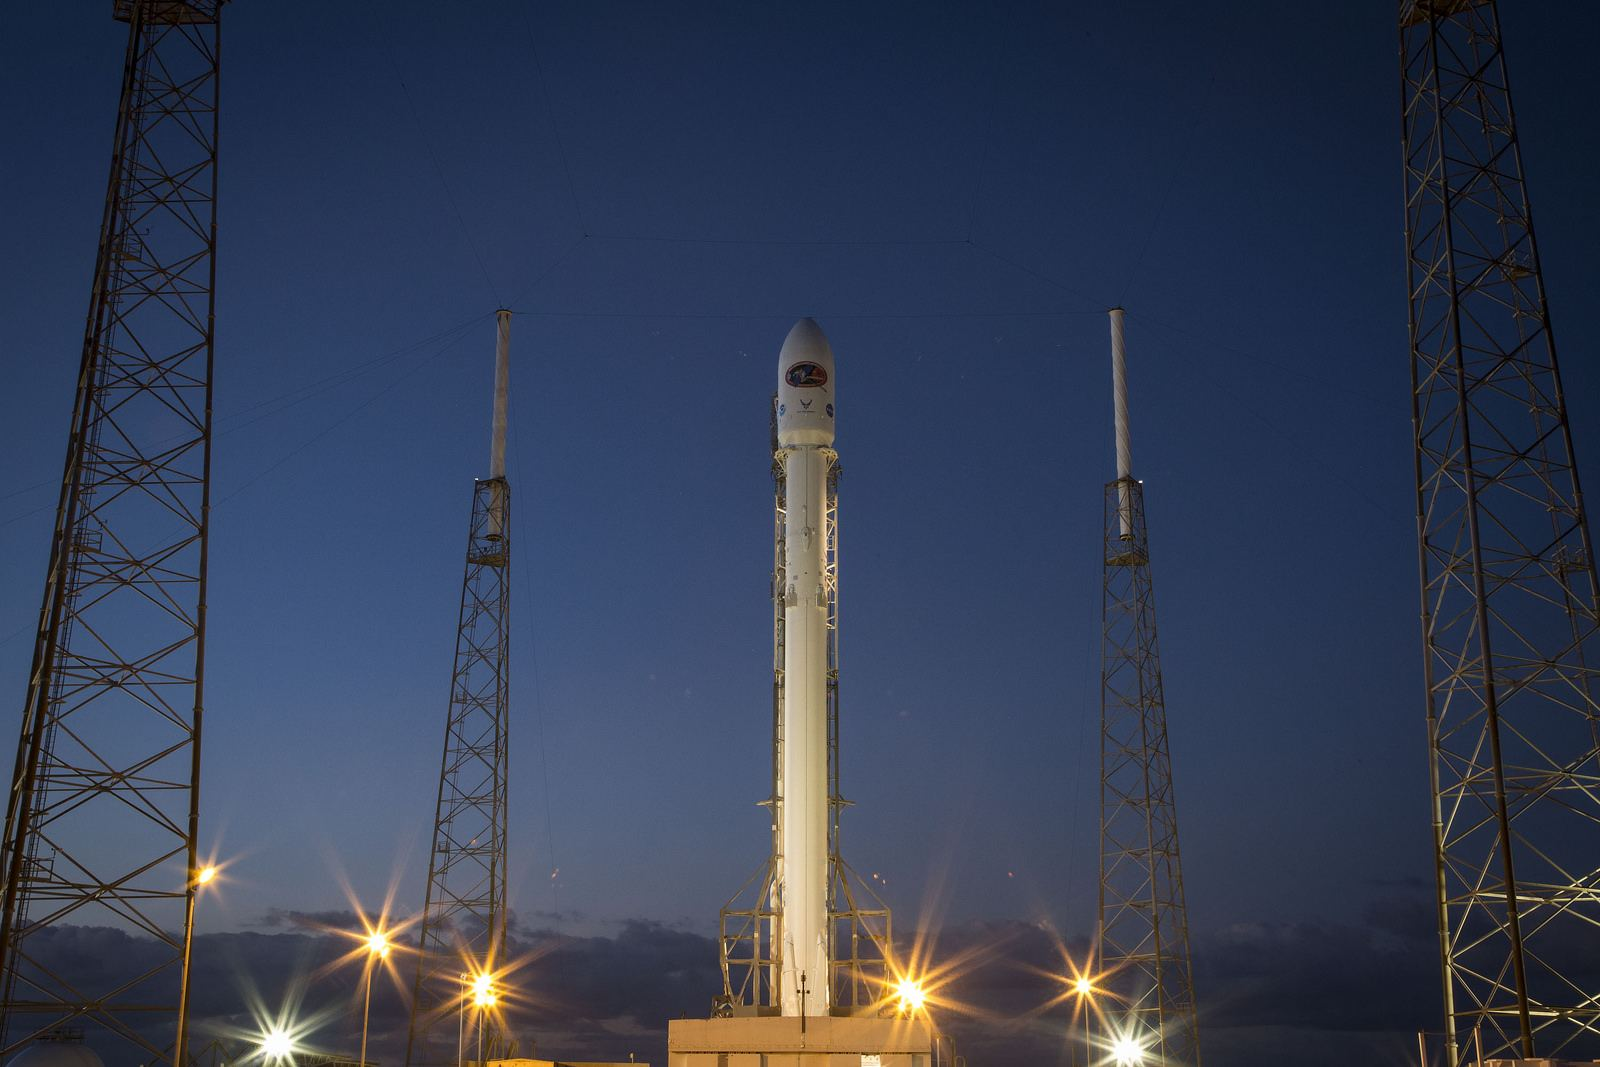 spacex4 Falcon 9 lifted off from SpaceX Launch Complex